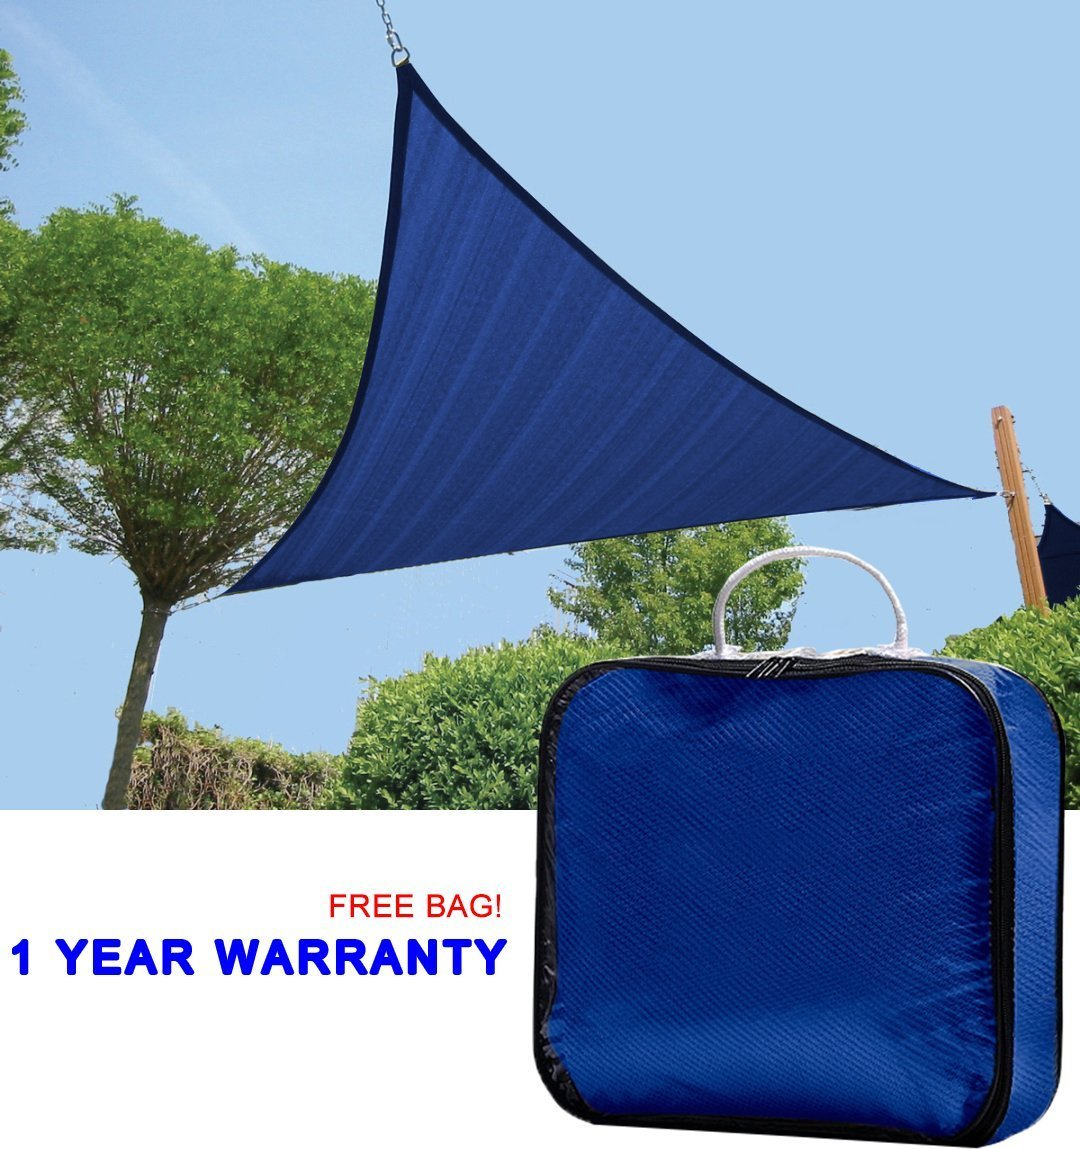 Quictent New Outdoor 12' x 12' x 12' Triangle Sun Shade Sail Canopy Patio Garden Top Cover- Blue, with Free Carry Bag